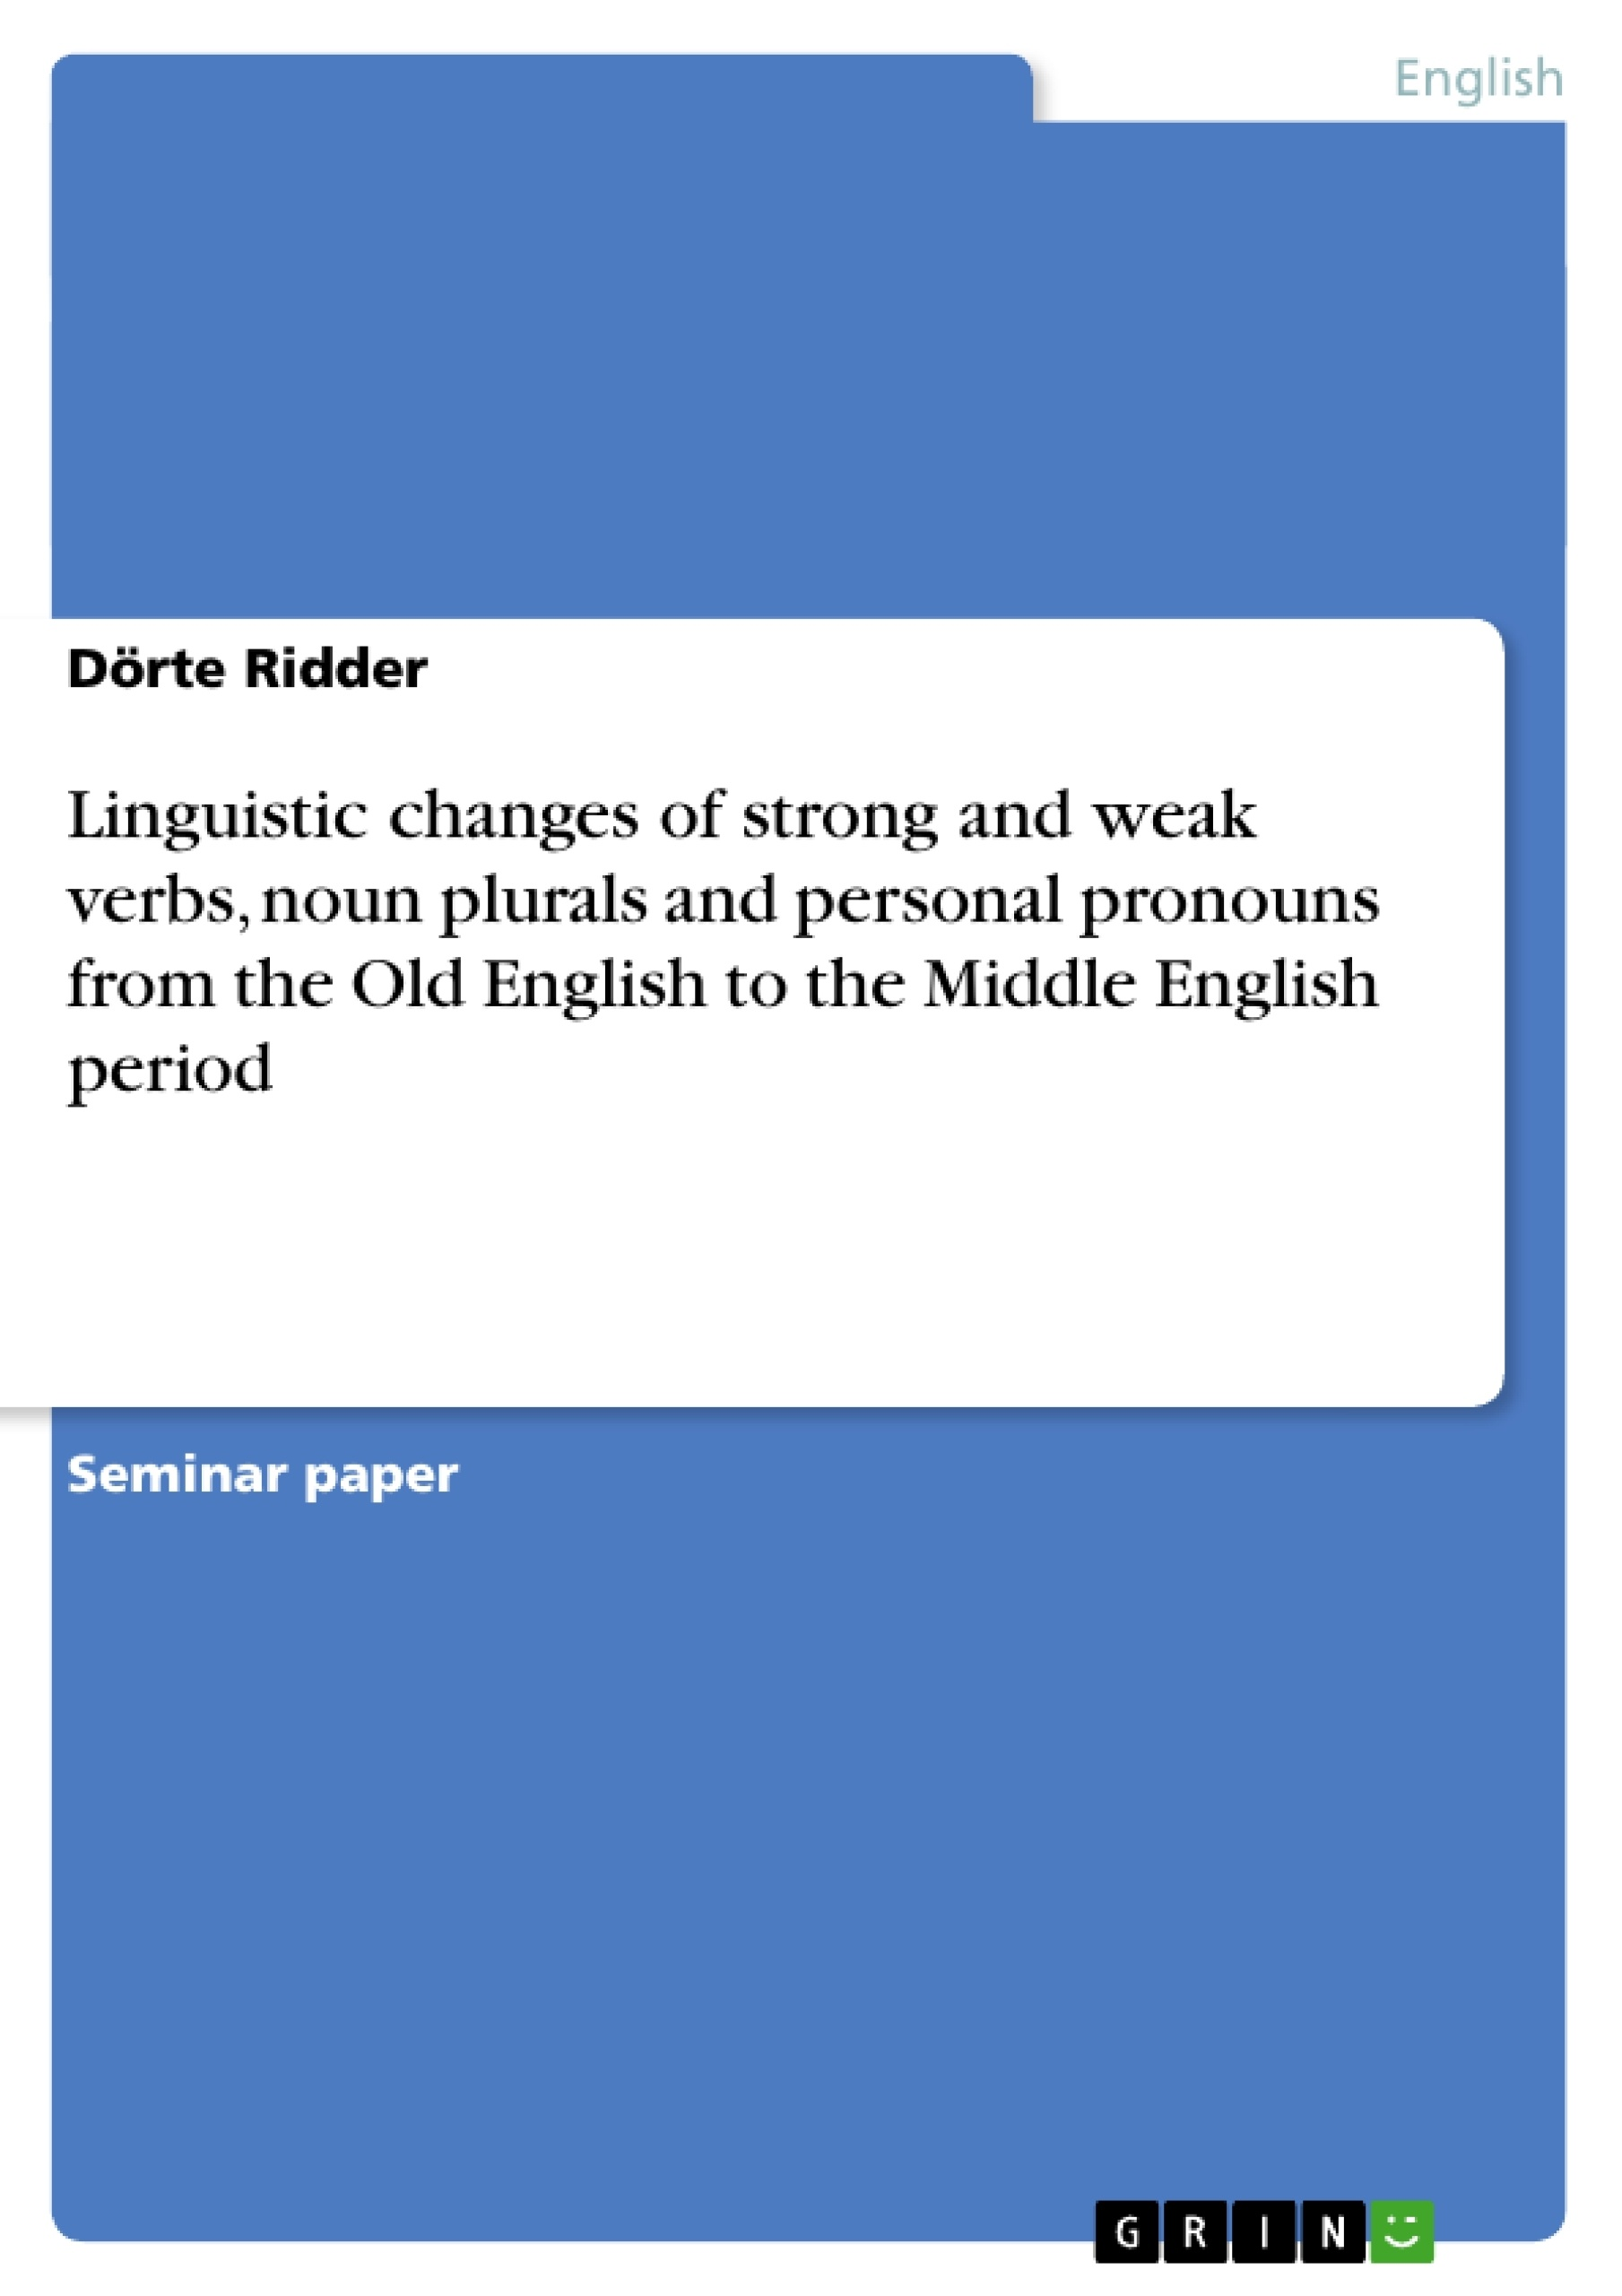 Title: Linguistic changes of strong and weak verbs, noun plurals and personal pronouns from the Old English to the Middle English period